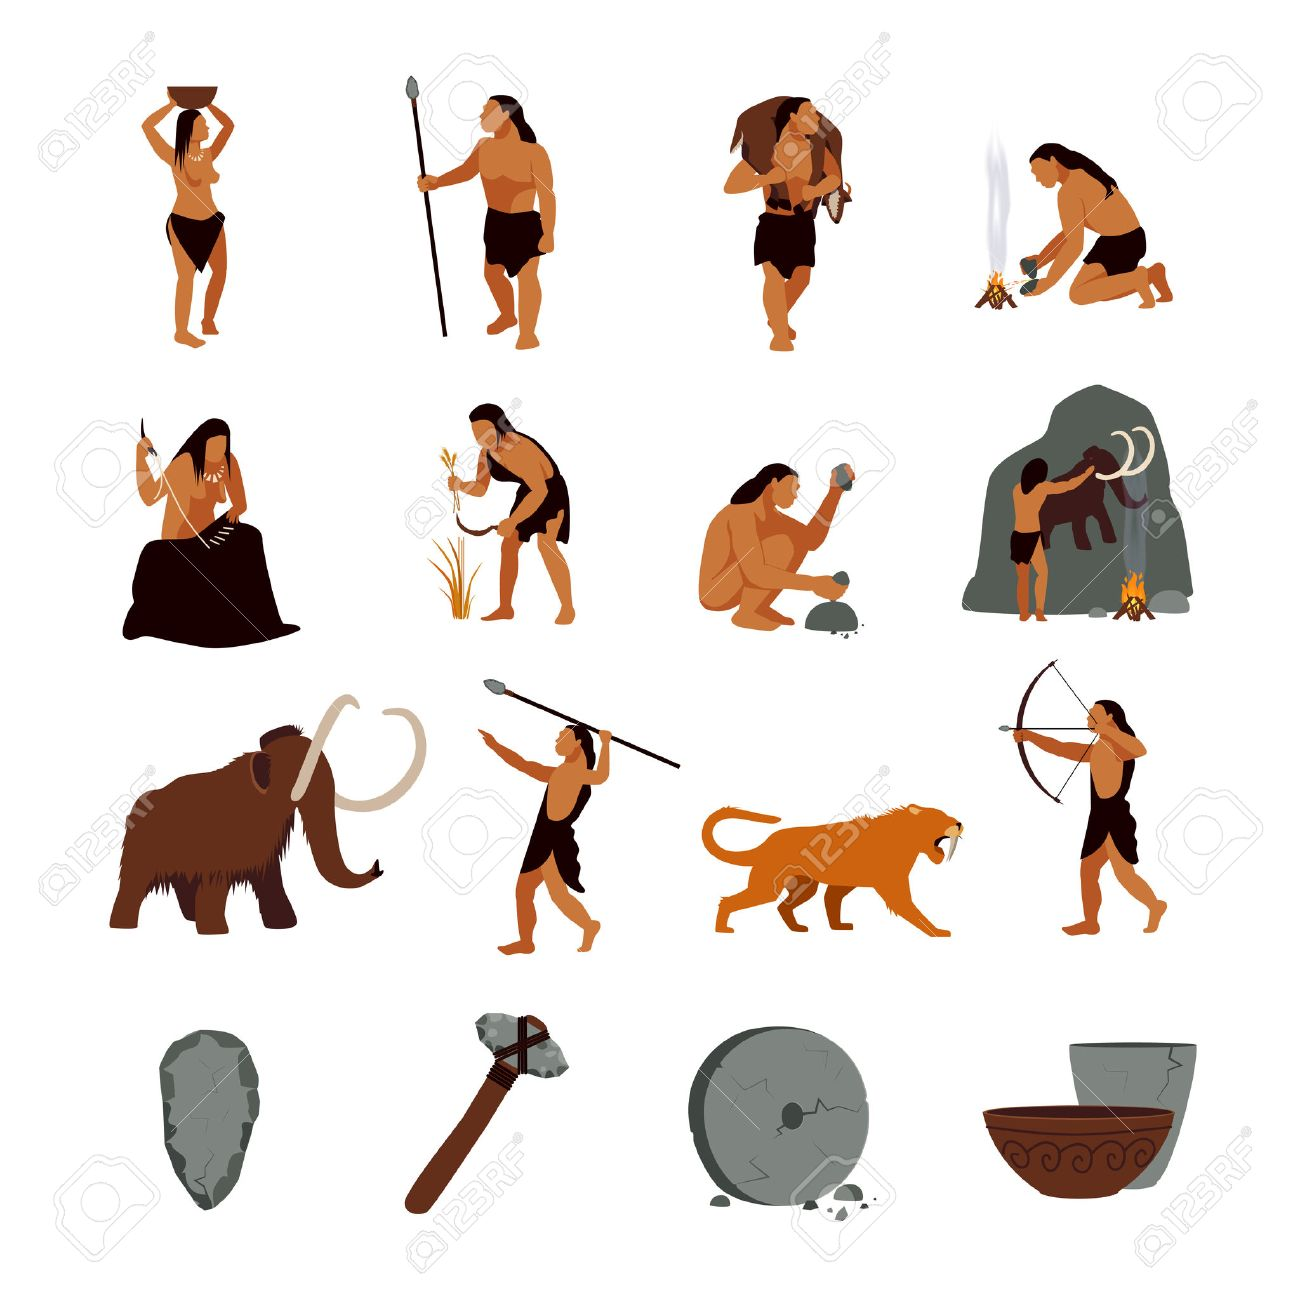 Prehistoric stone age icons set presenting life of cavemen and their primitive tools flat isolated vector illustration - 54692169